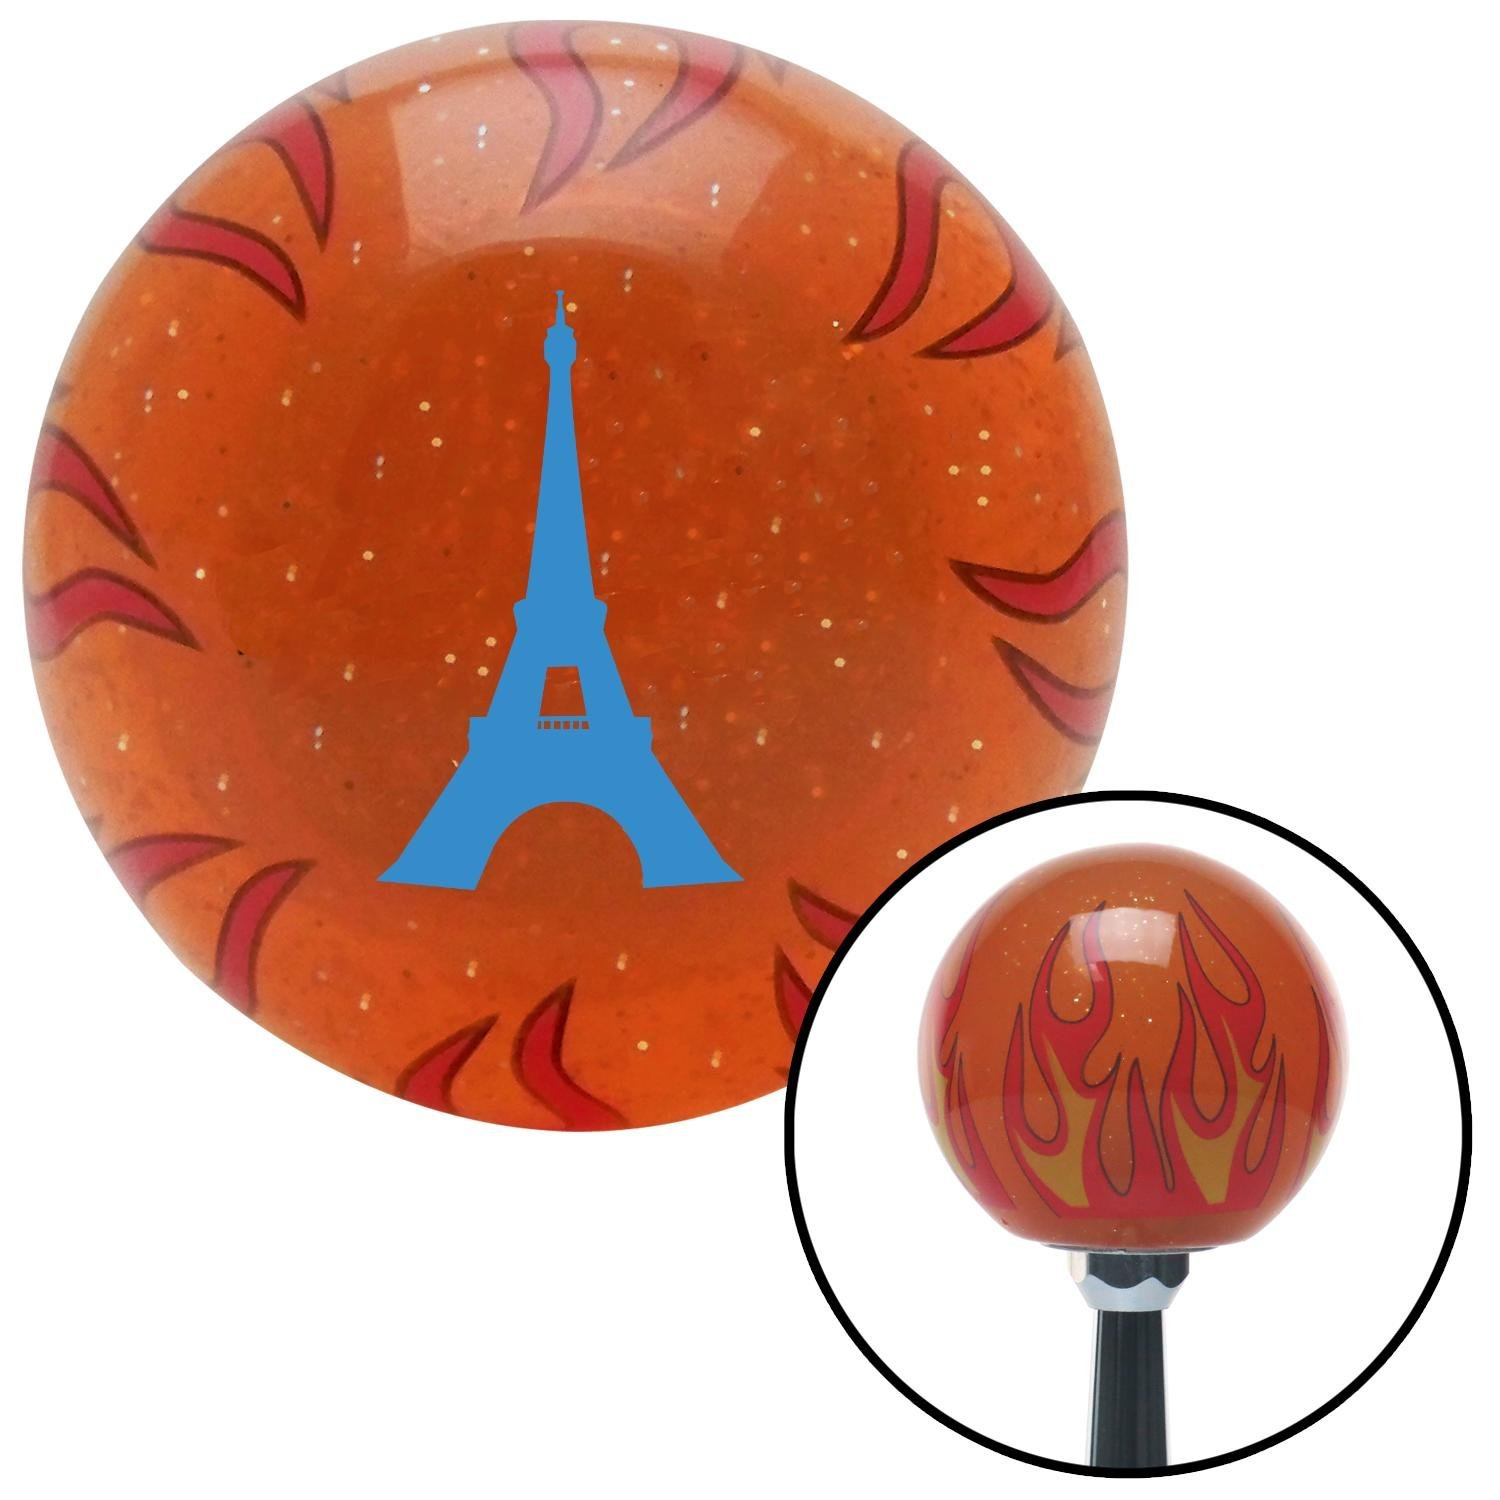 Blue The Eiffel Tower American Shifter 252641 Orange Flame Metal Flake Shift Knob with M16 x 1.5 Insert